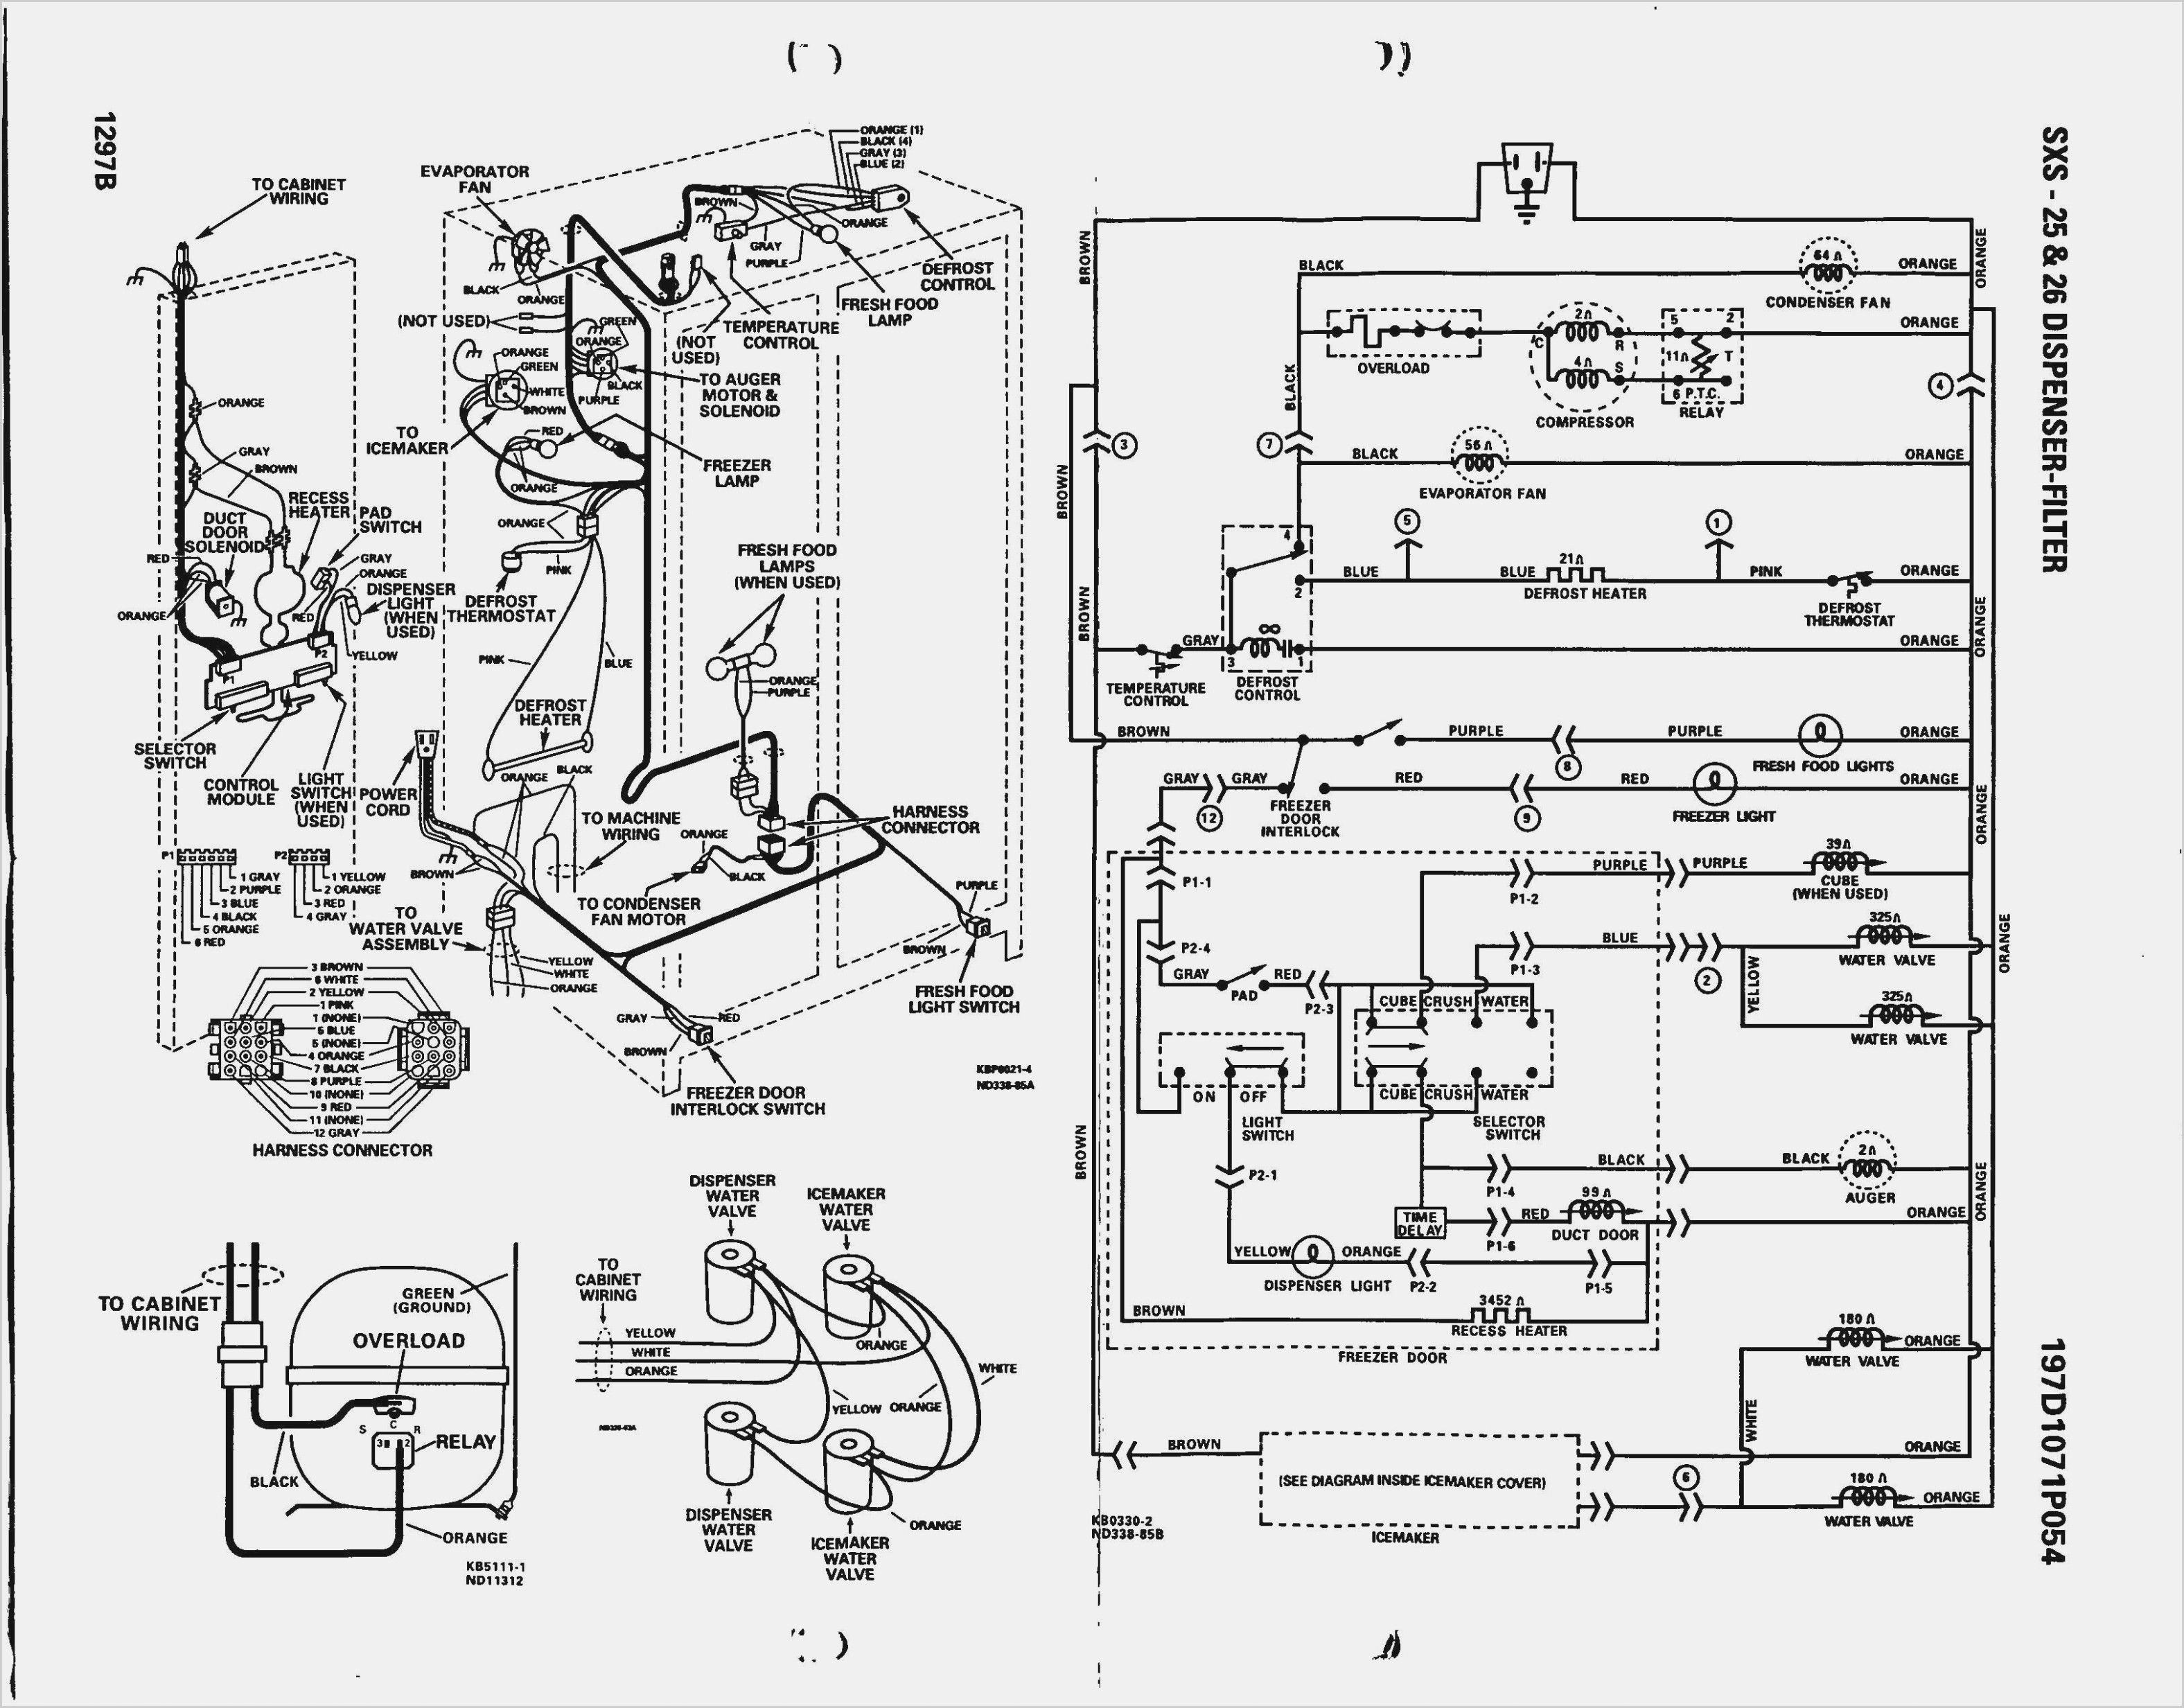 Unique Wiring Diagram For Electric Stove Outlet Diagram Diagramsample Diagramtemplate Wiringdiagr Whirlpool Dryer Ge Refrigerator Automatic Washing Machine